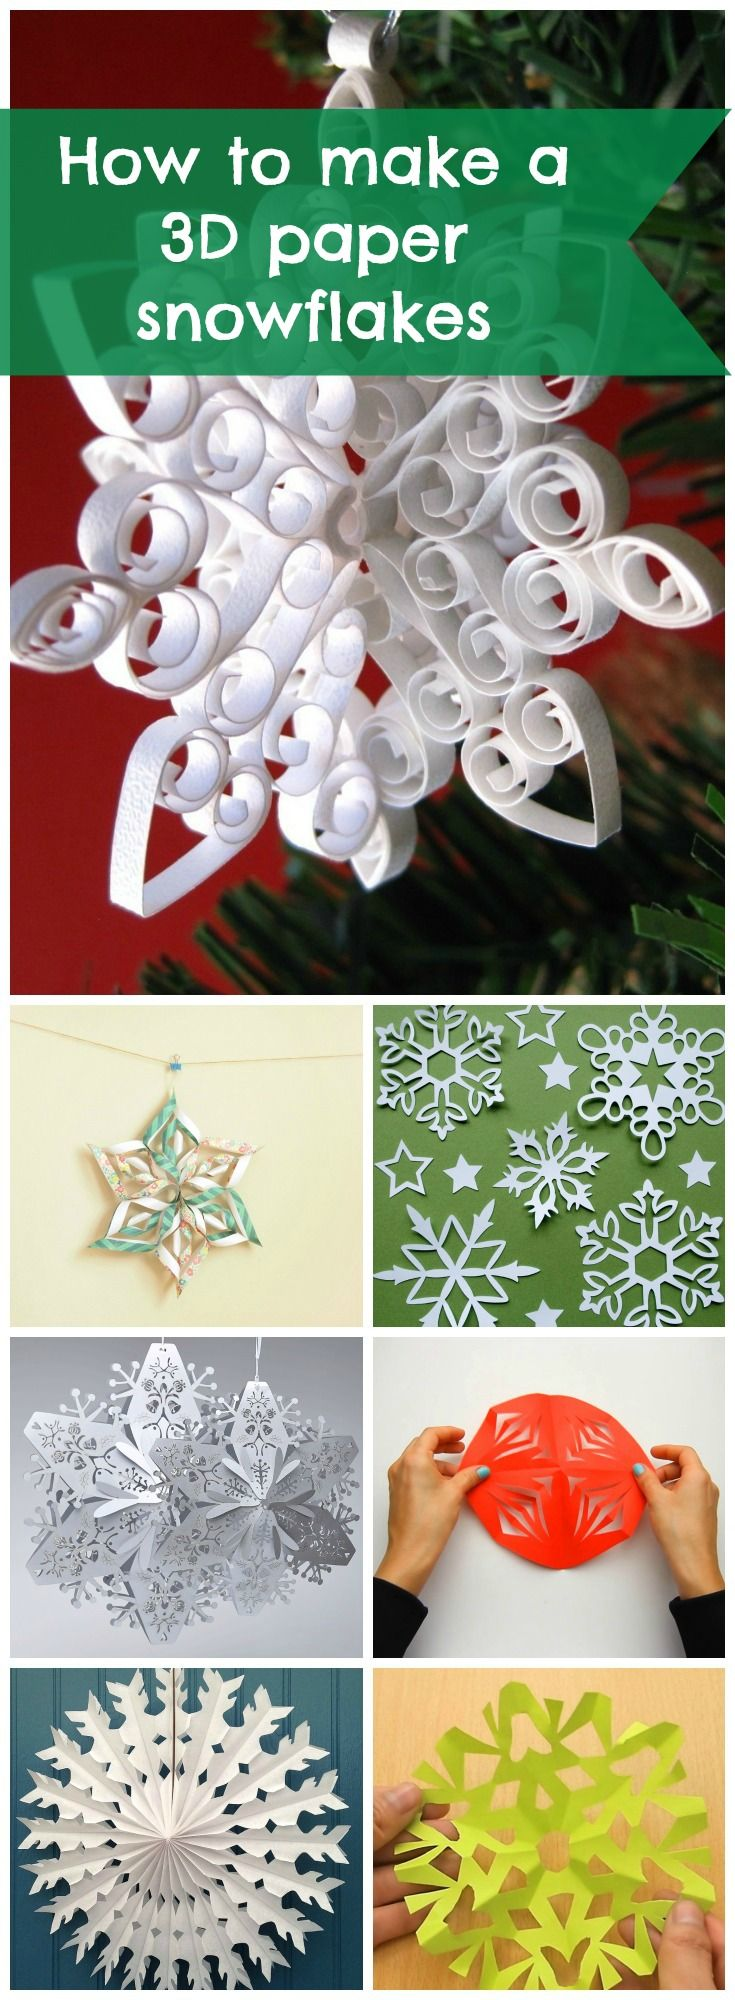 How To Make a 3D Paper Snowflake | QSession.com